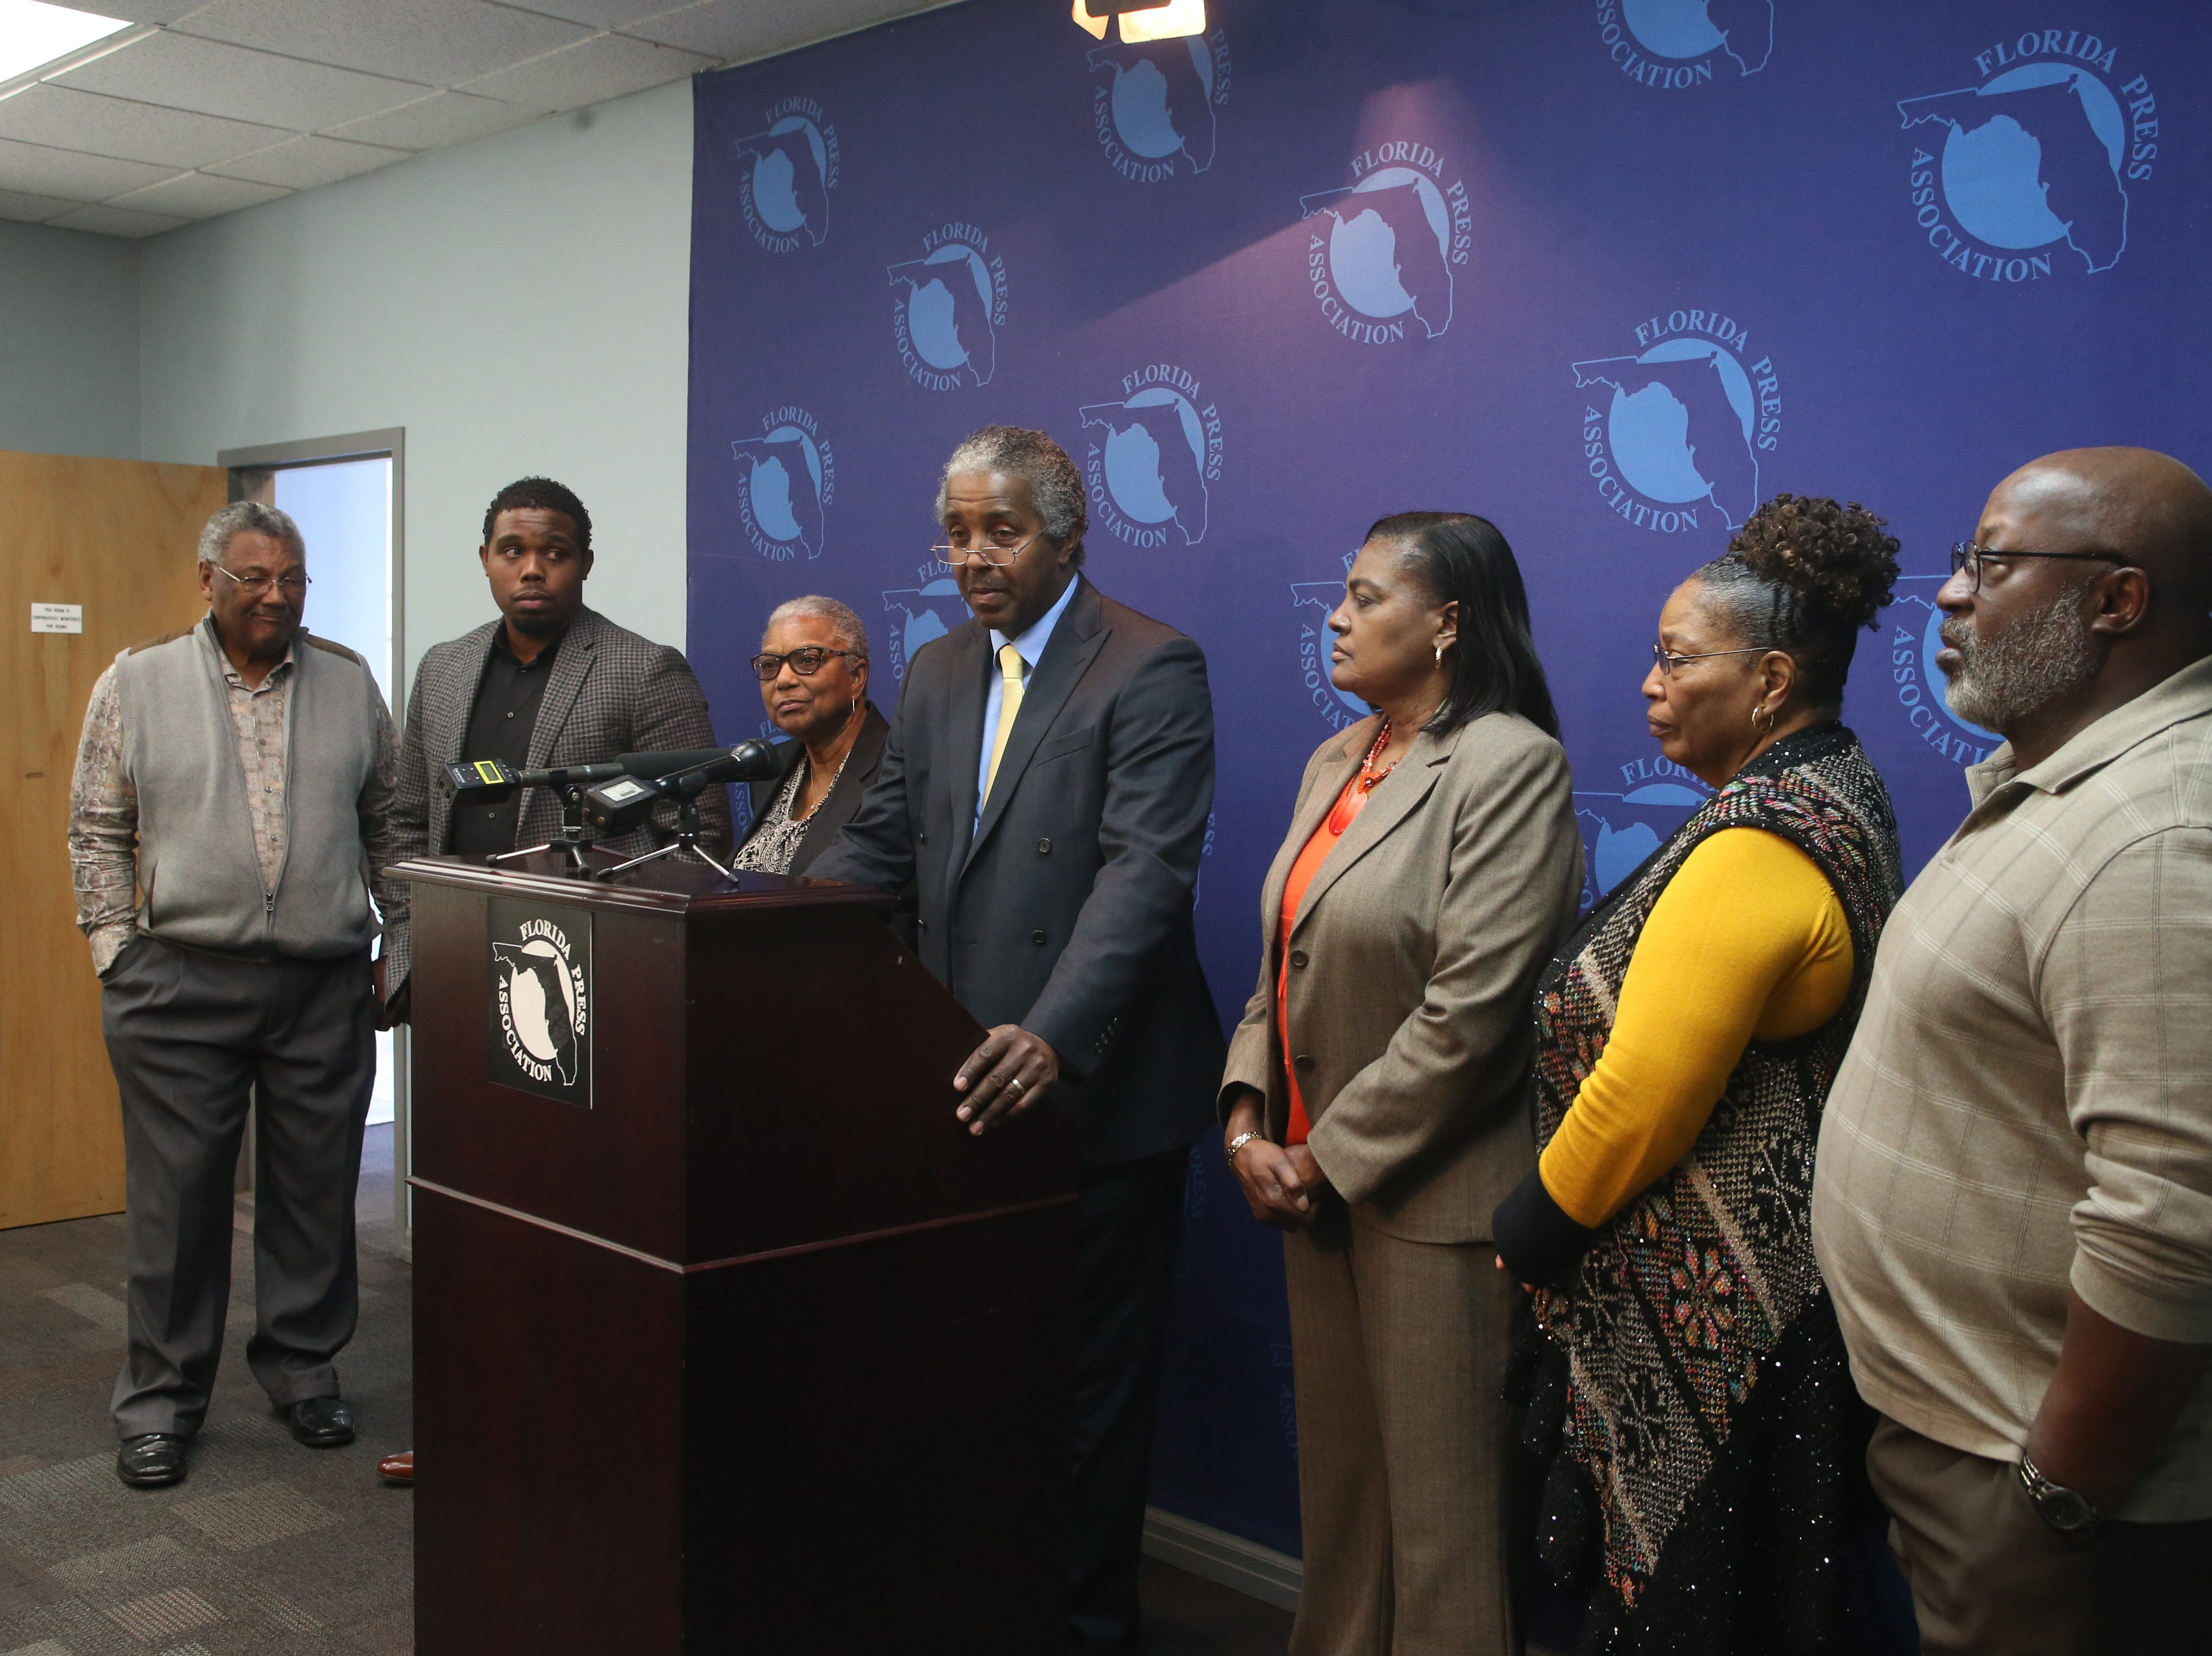 Members of the Greenlee family hold a press conference with the media after Charles Greenlee, one of the Groveland Four, was pardoned Friday, Jan. 11, 2019.